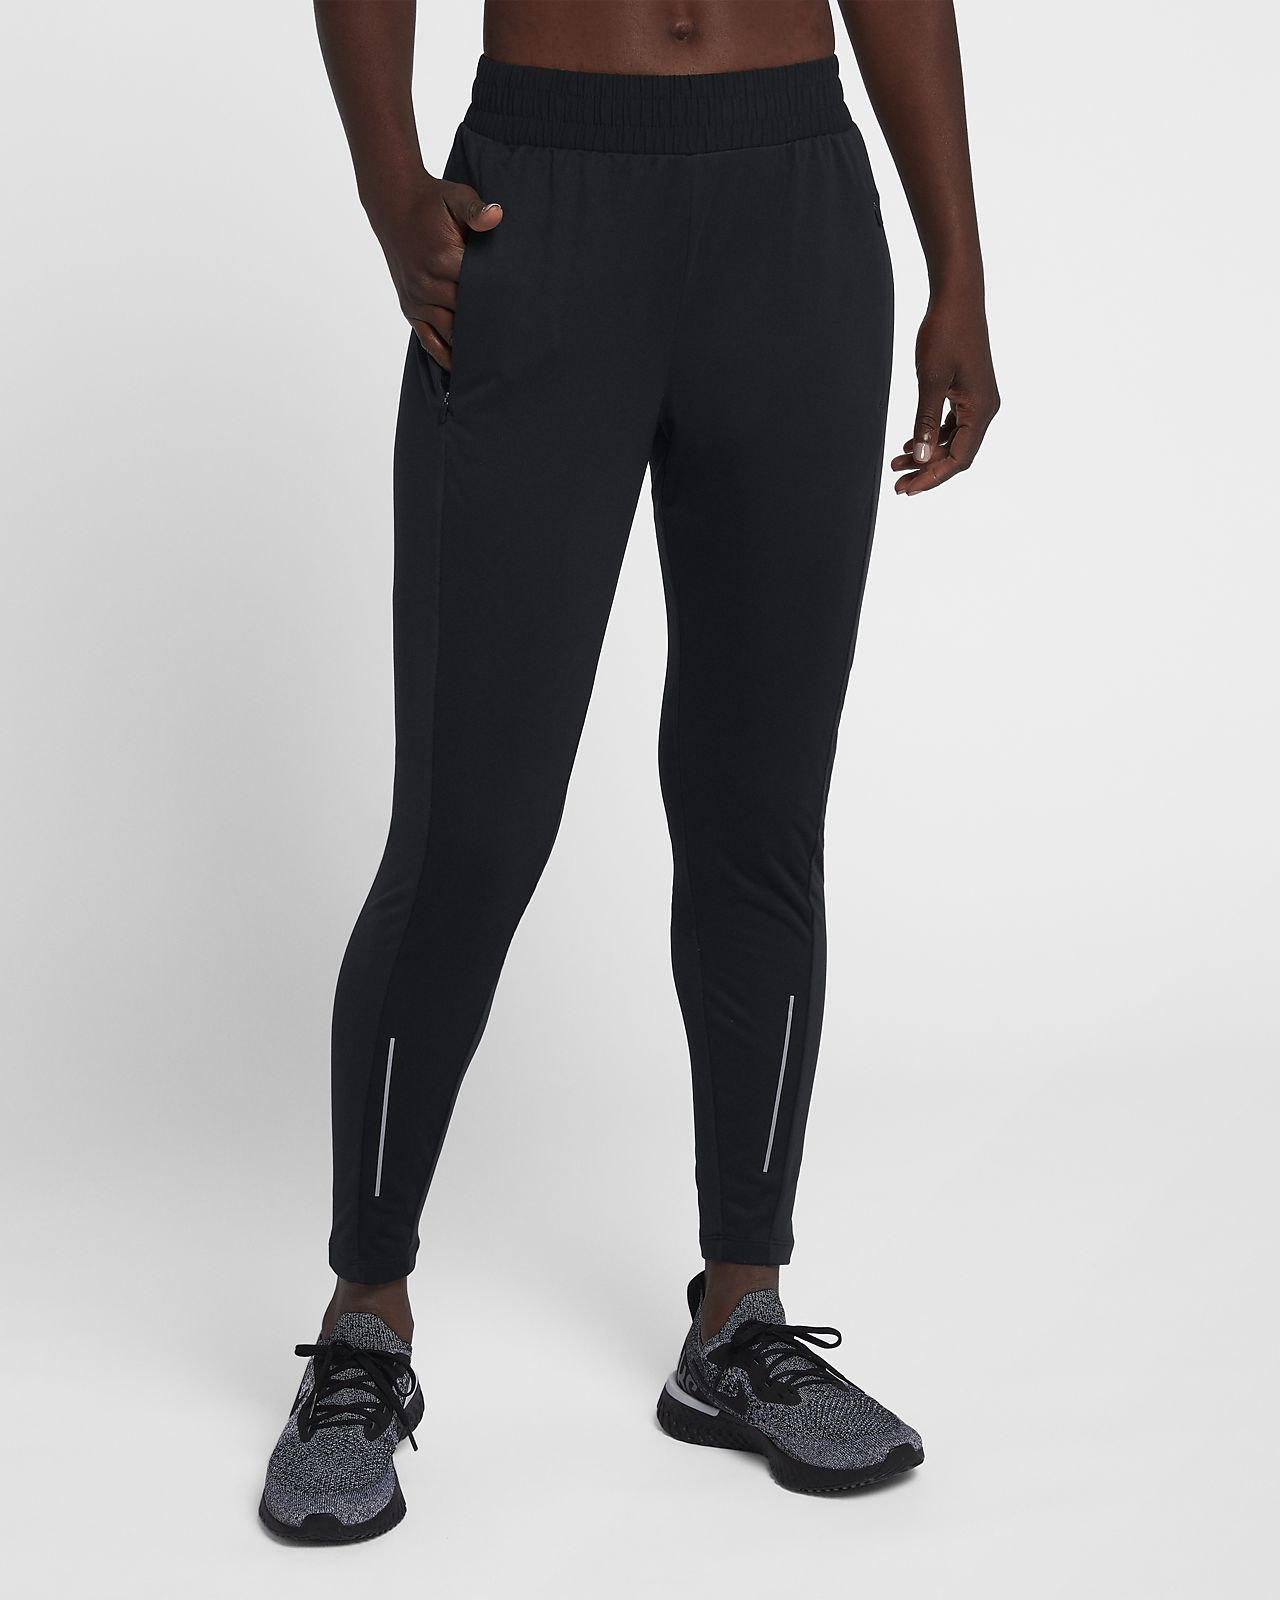 Nike Swift Winterized Women s Running Trousers. Nike.com GB e5a4c36bbd